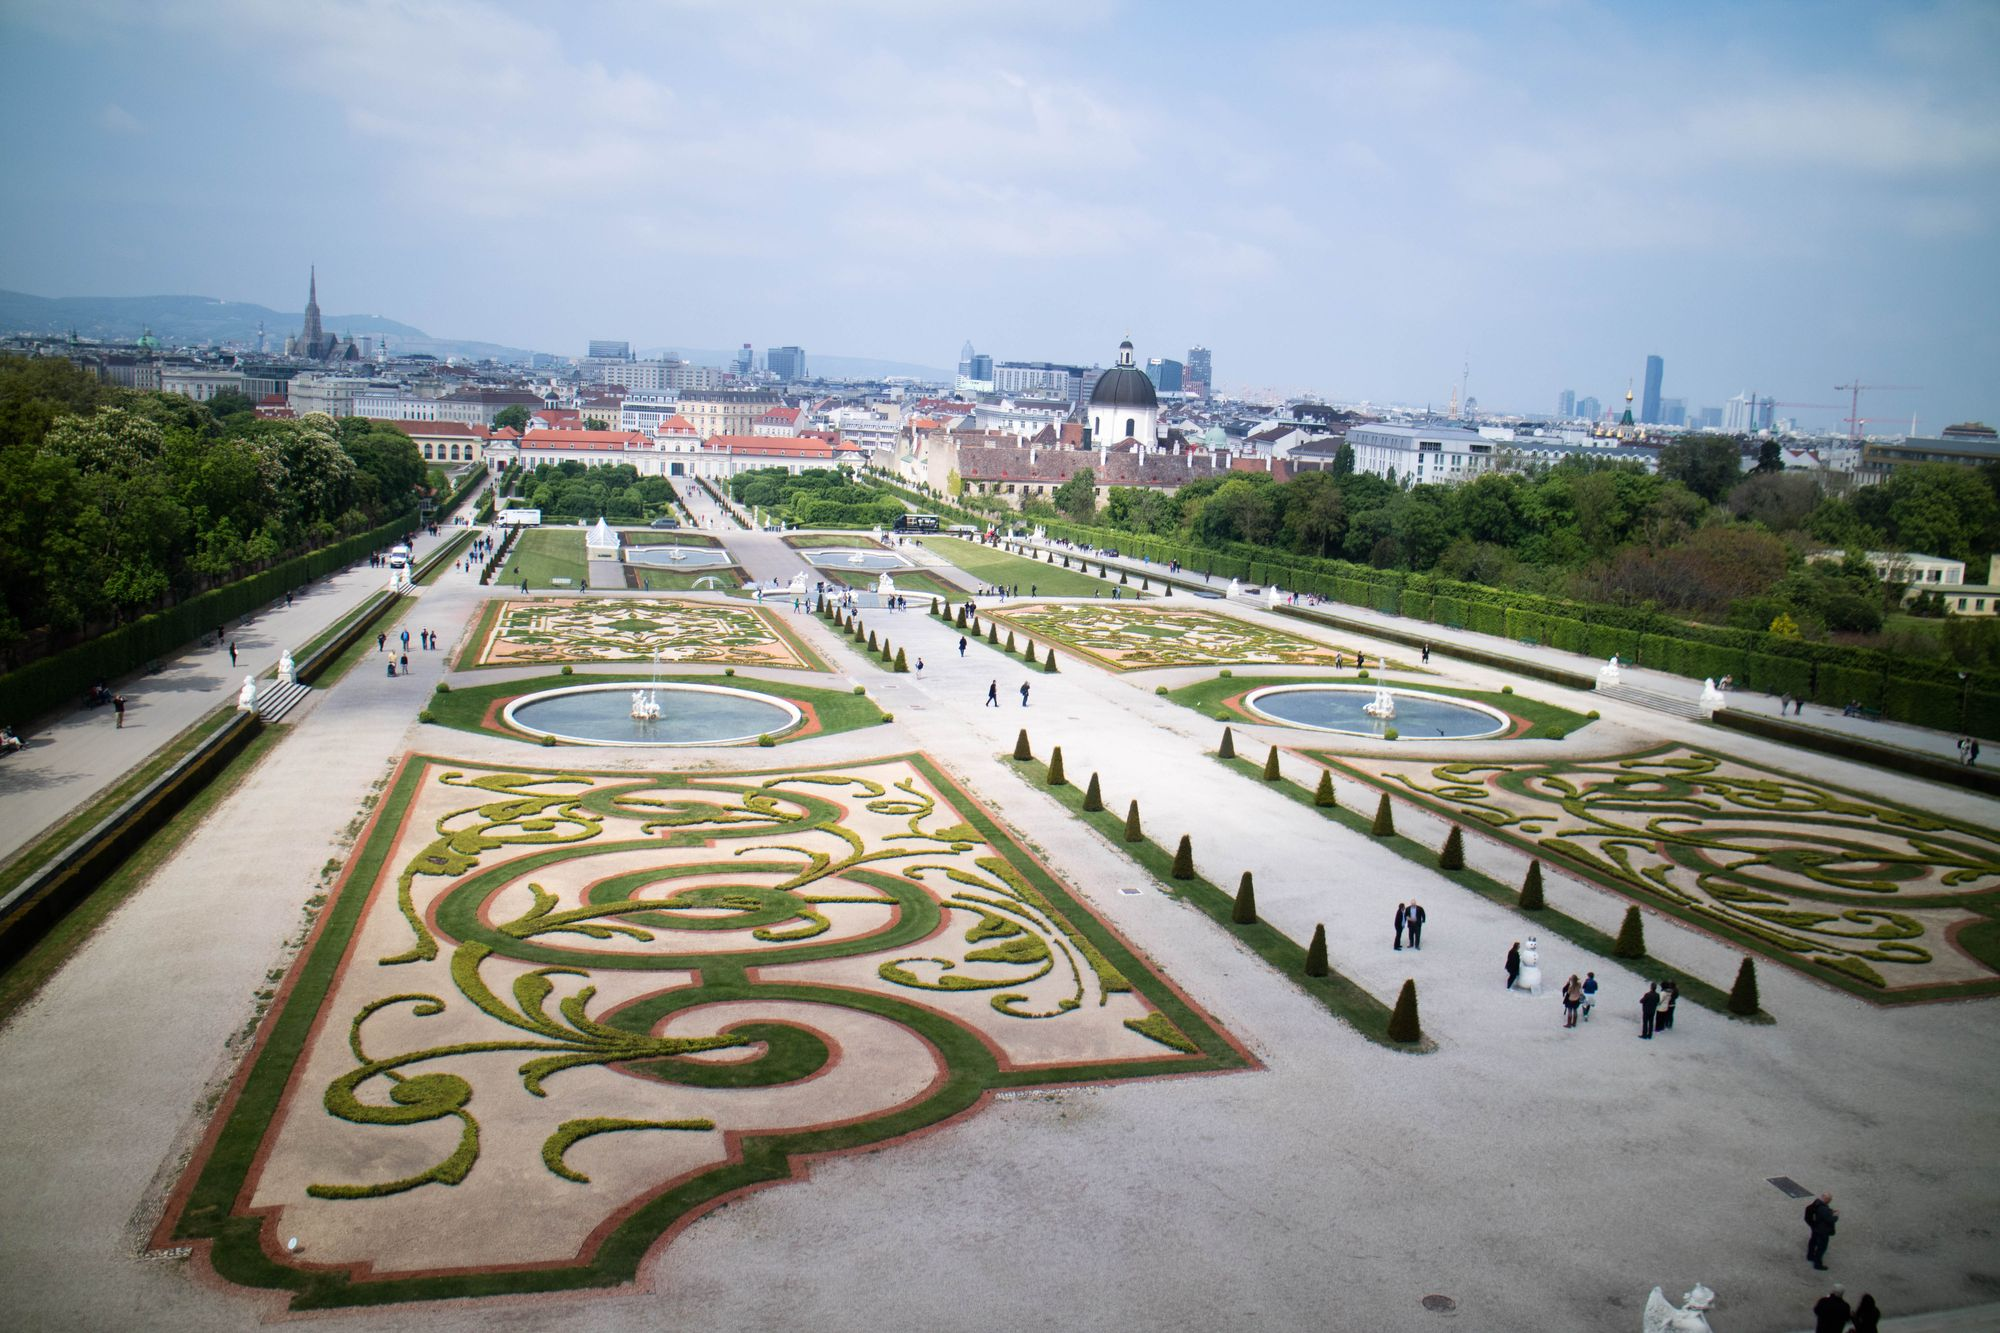 the gardens of belvedere